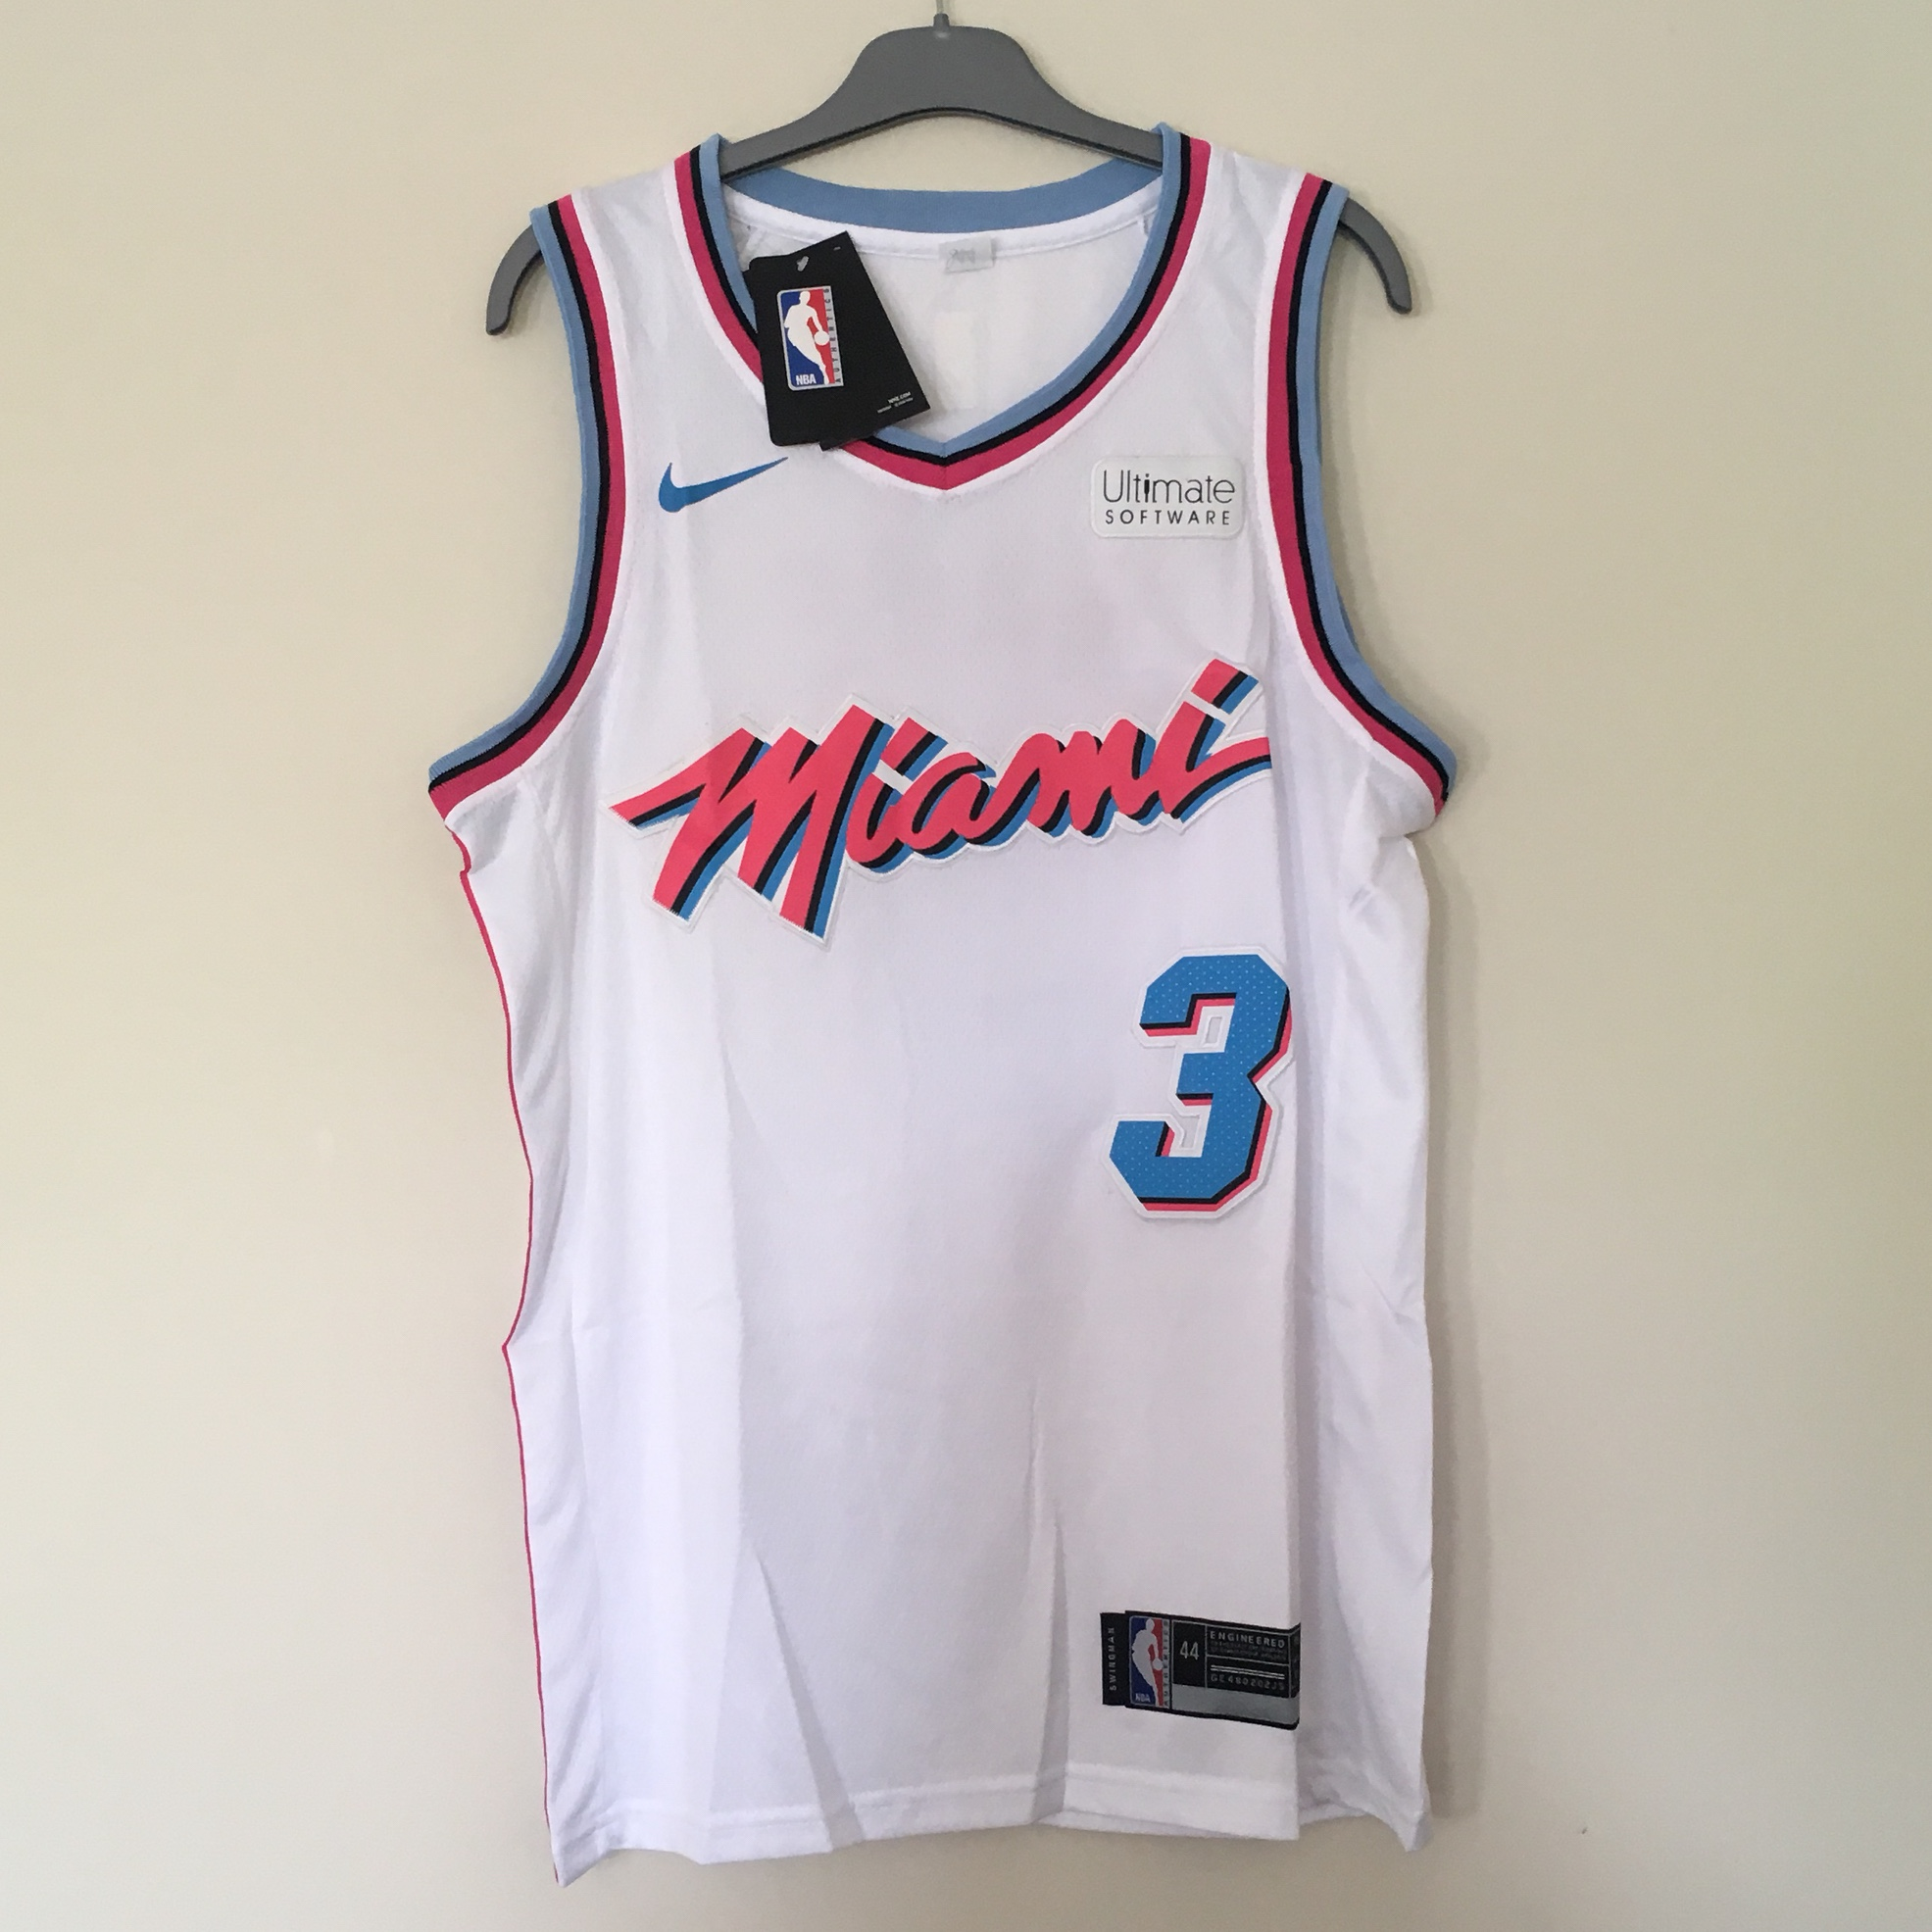 best service 0f53e 9e15a White Miami Heat NBA city edition jersey - #3... - Depop